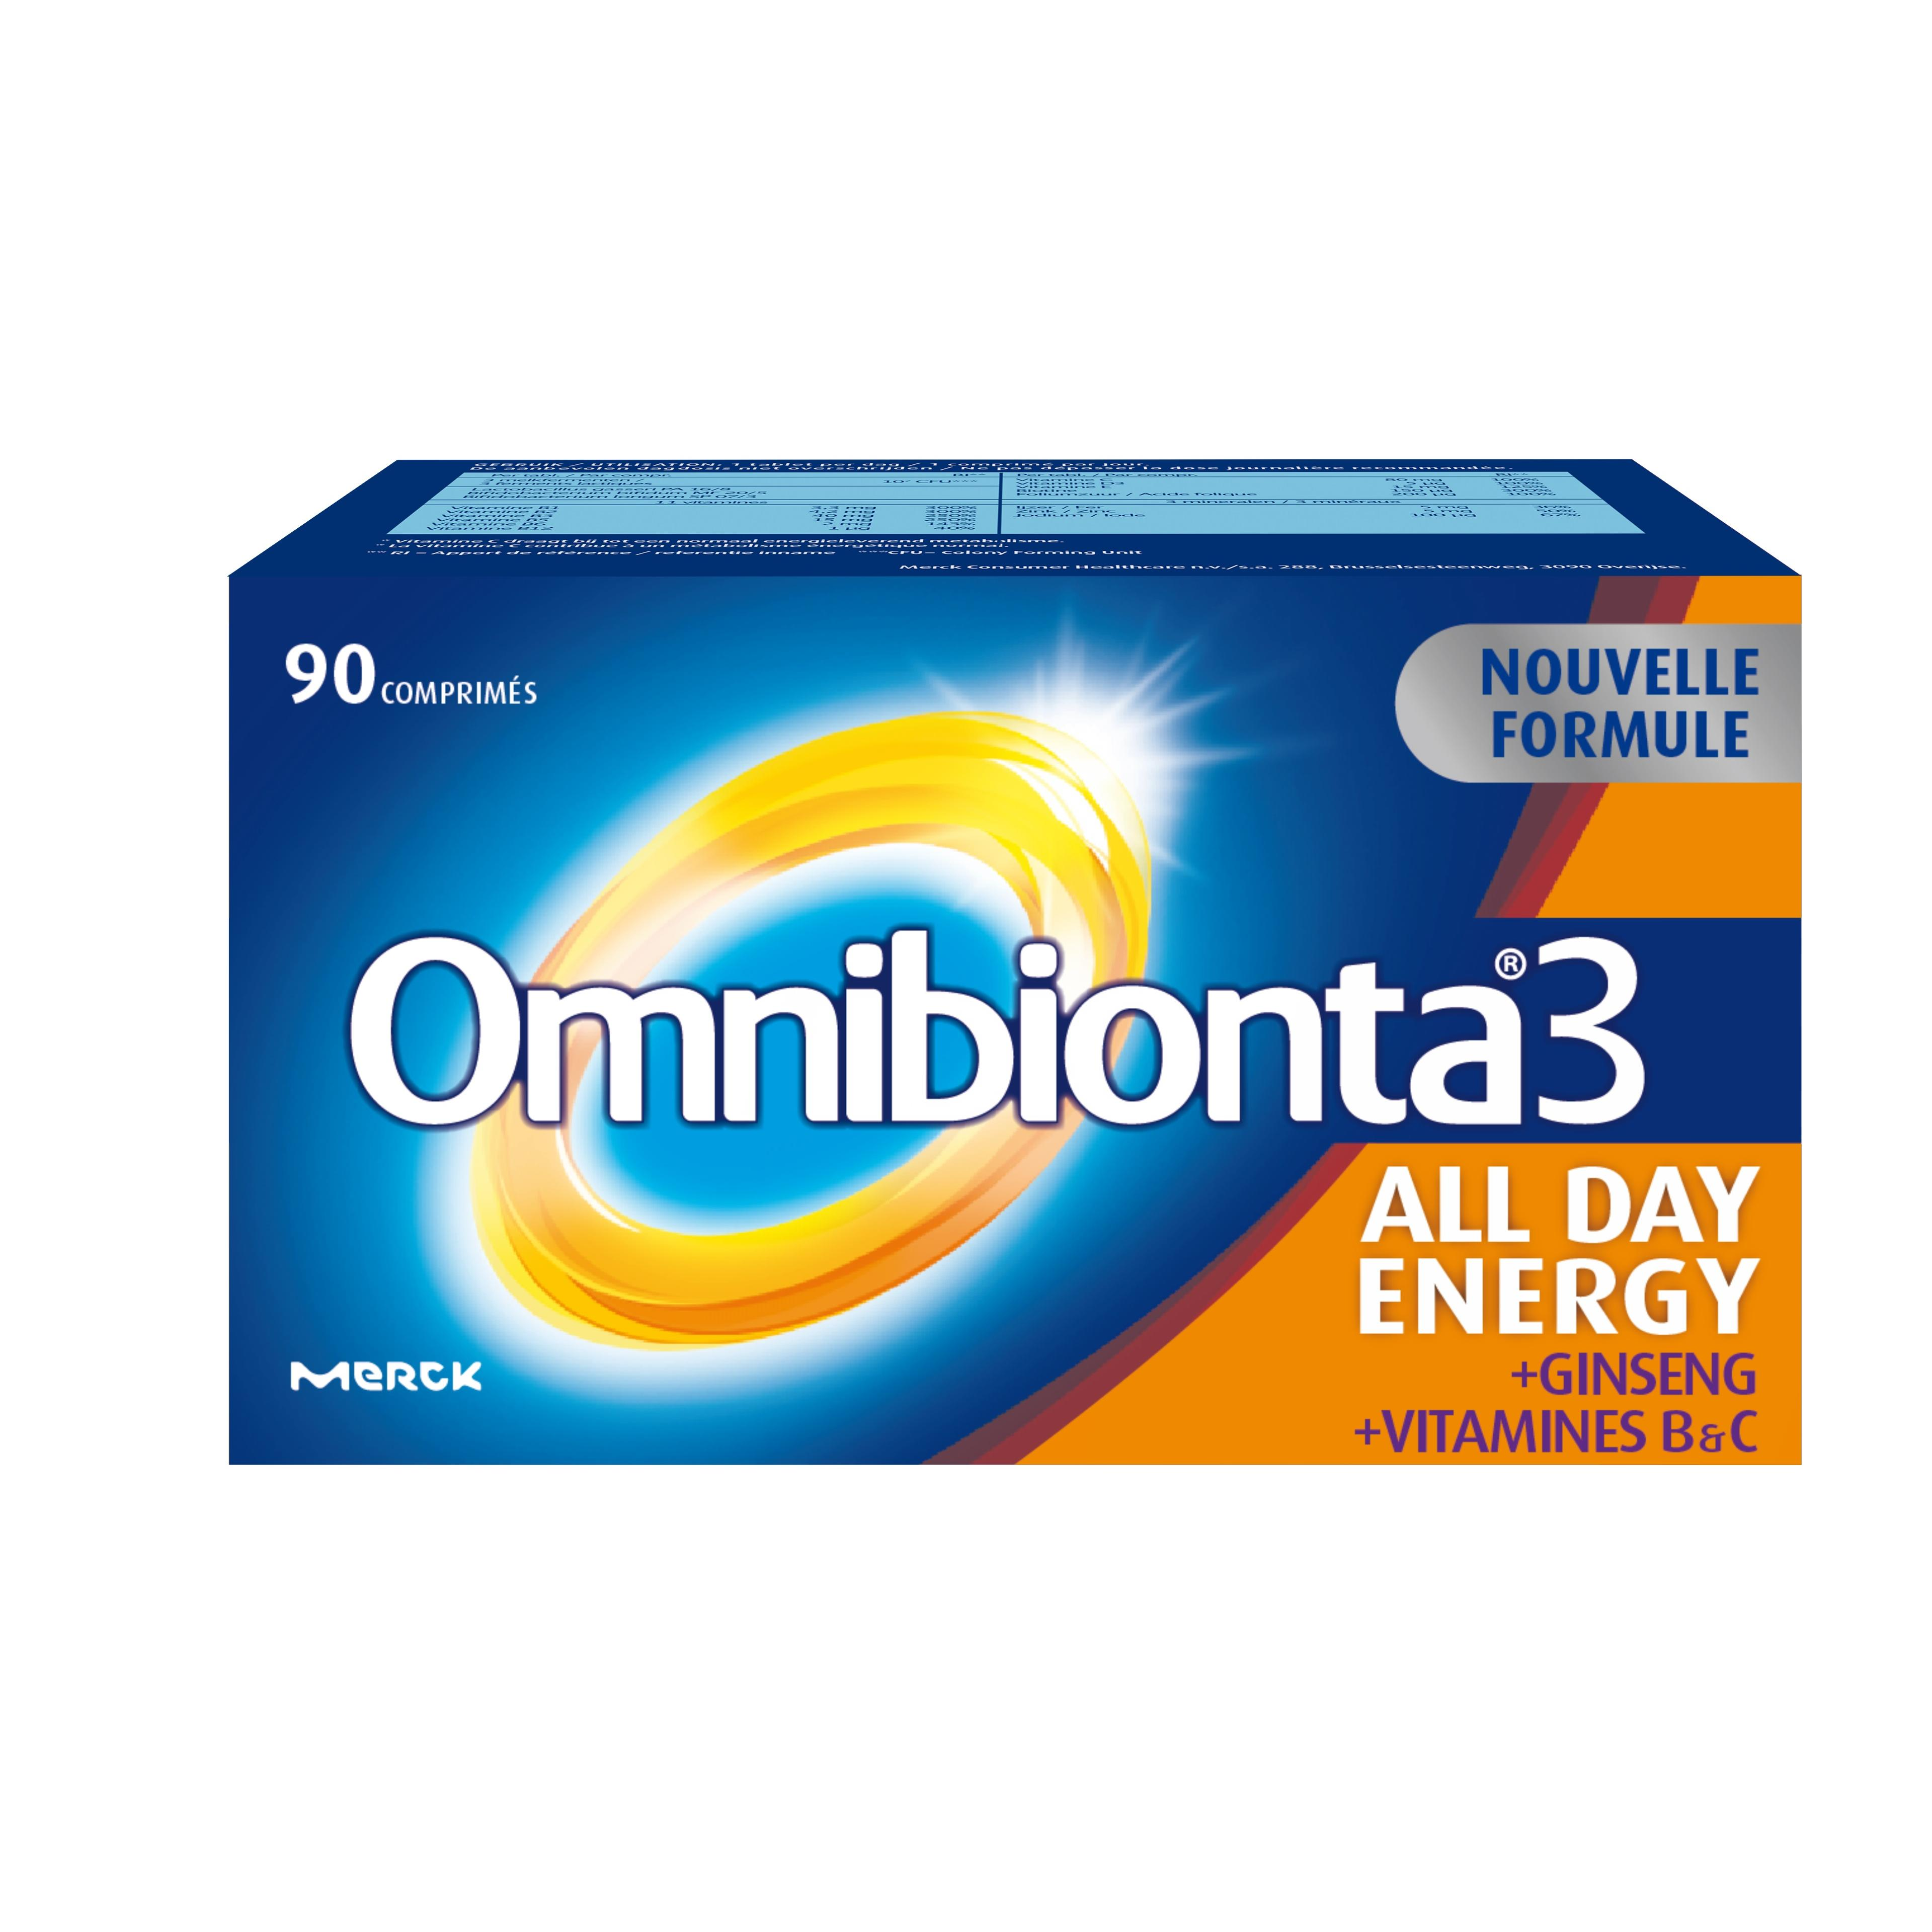 Image of Omnibionta 3 all day energy